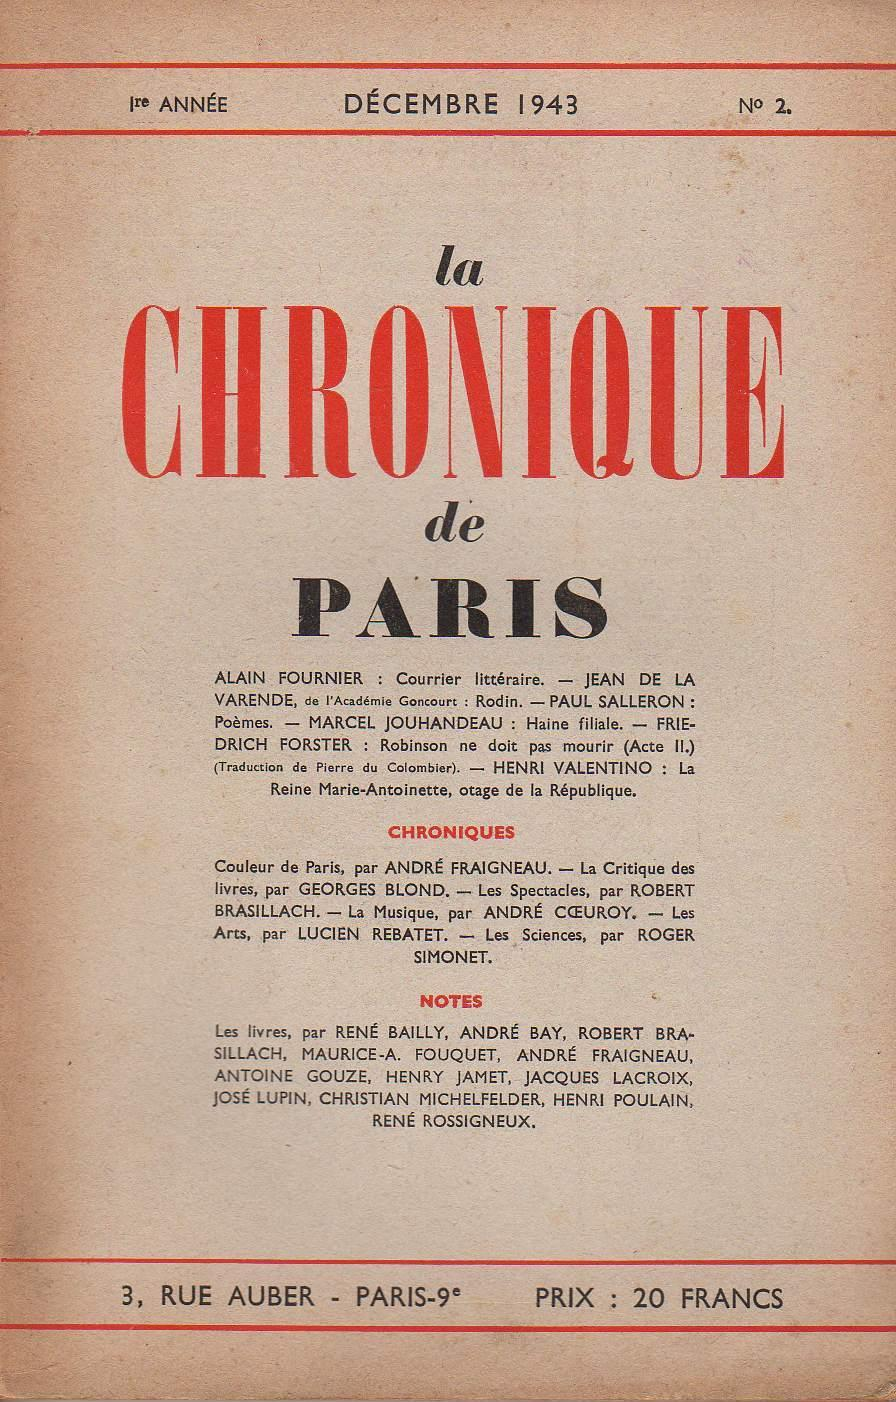 Chronique-de-Paris2.jpg